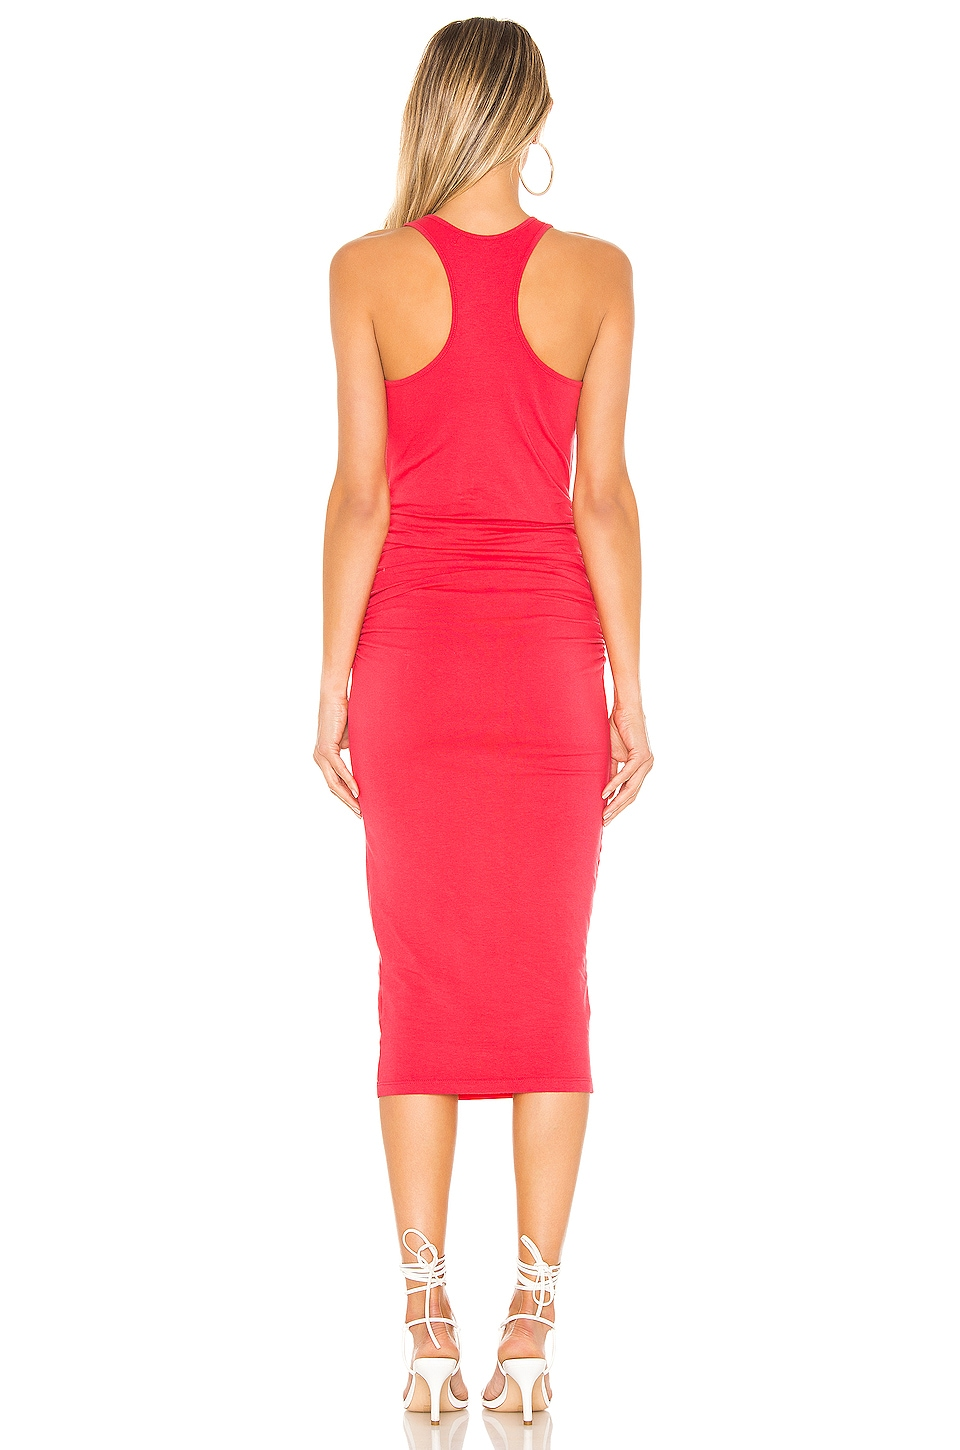 Racer Back Midi Dress, view 3, click to view large image.